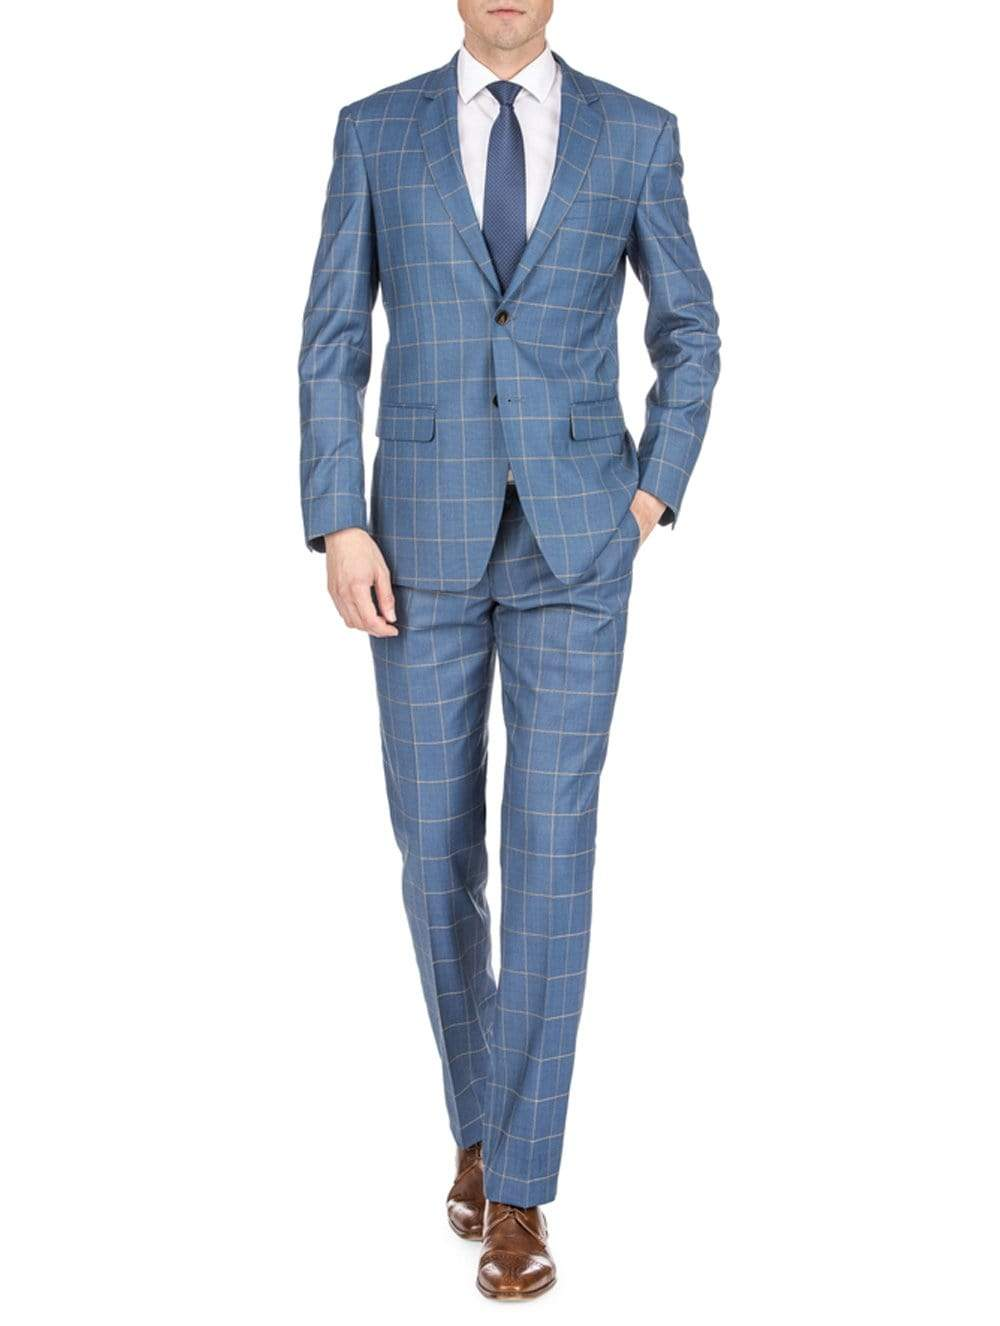 DAILY HAUTE Men's Suits TEAL BLUE / 36Rx30W Gino Vitale Men's Check Slim Fit Suits